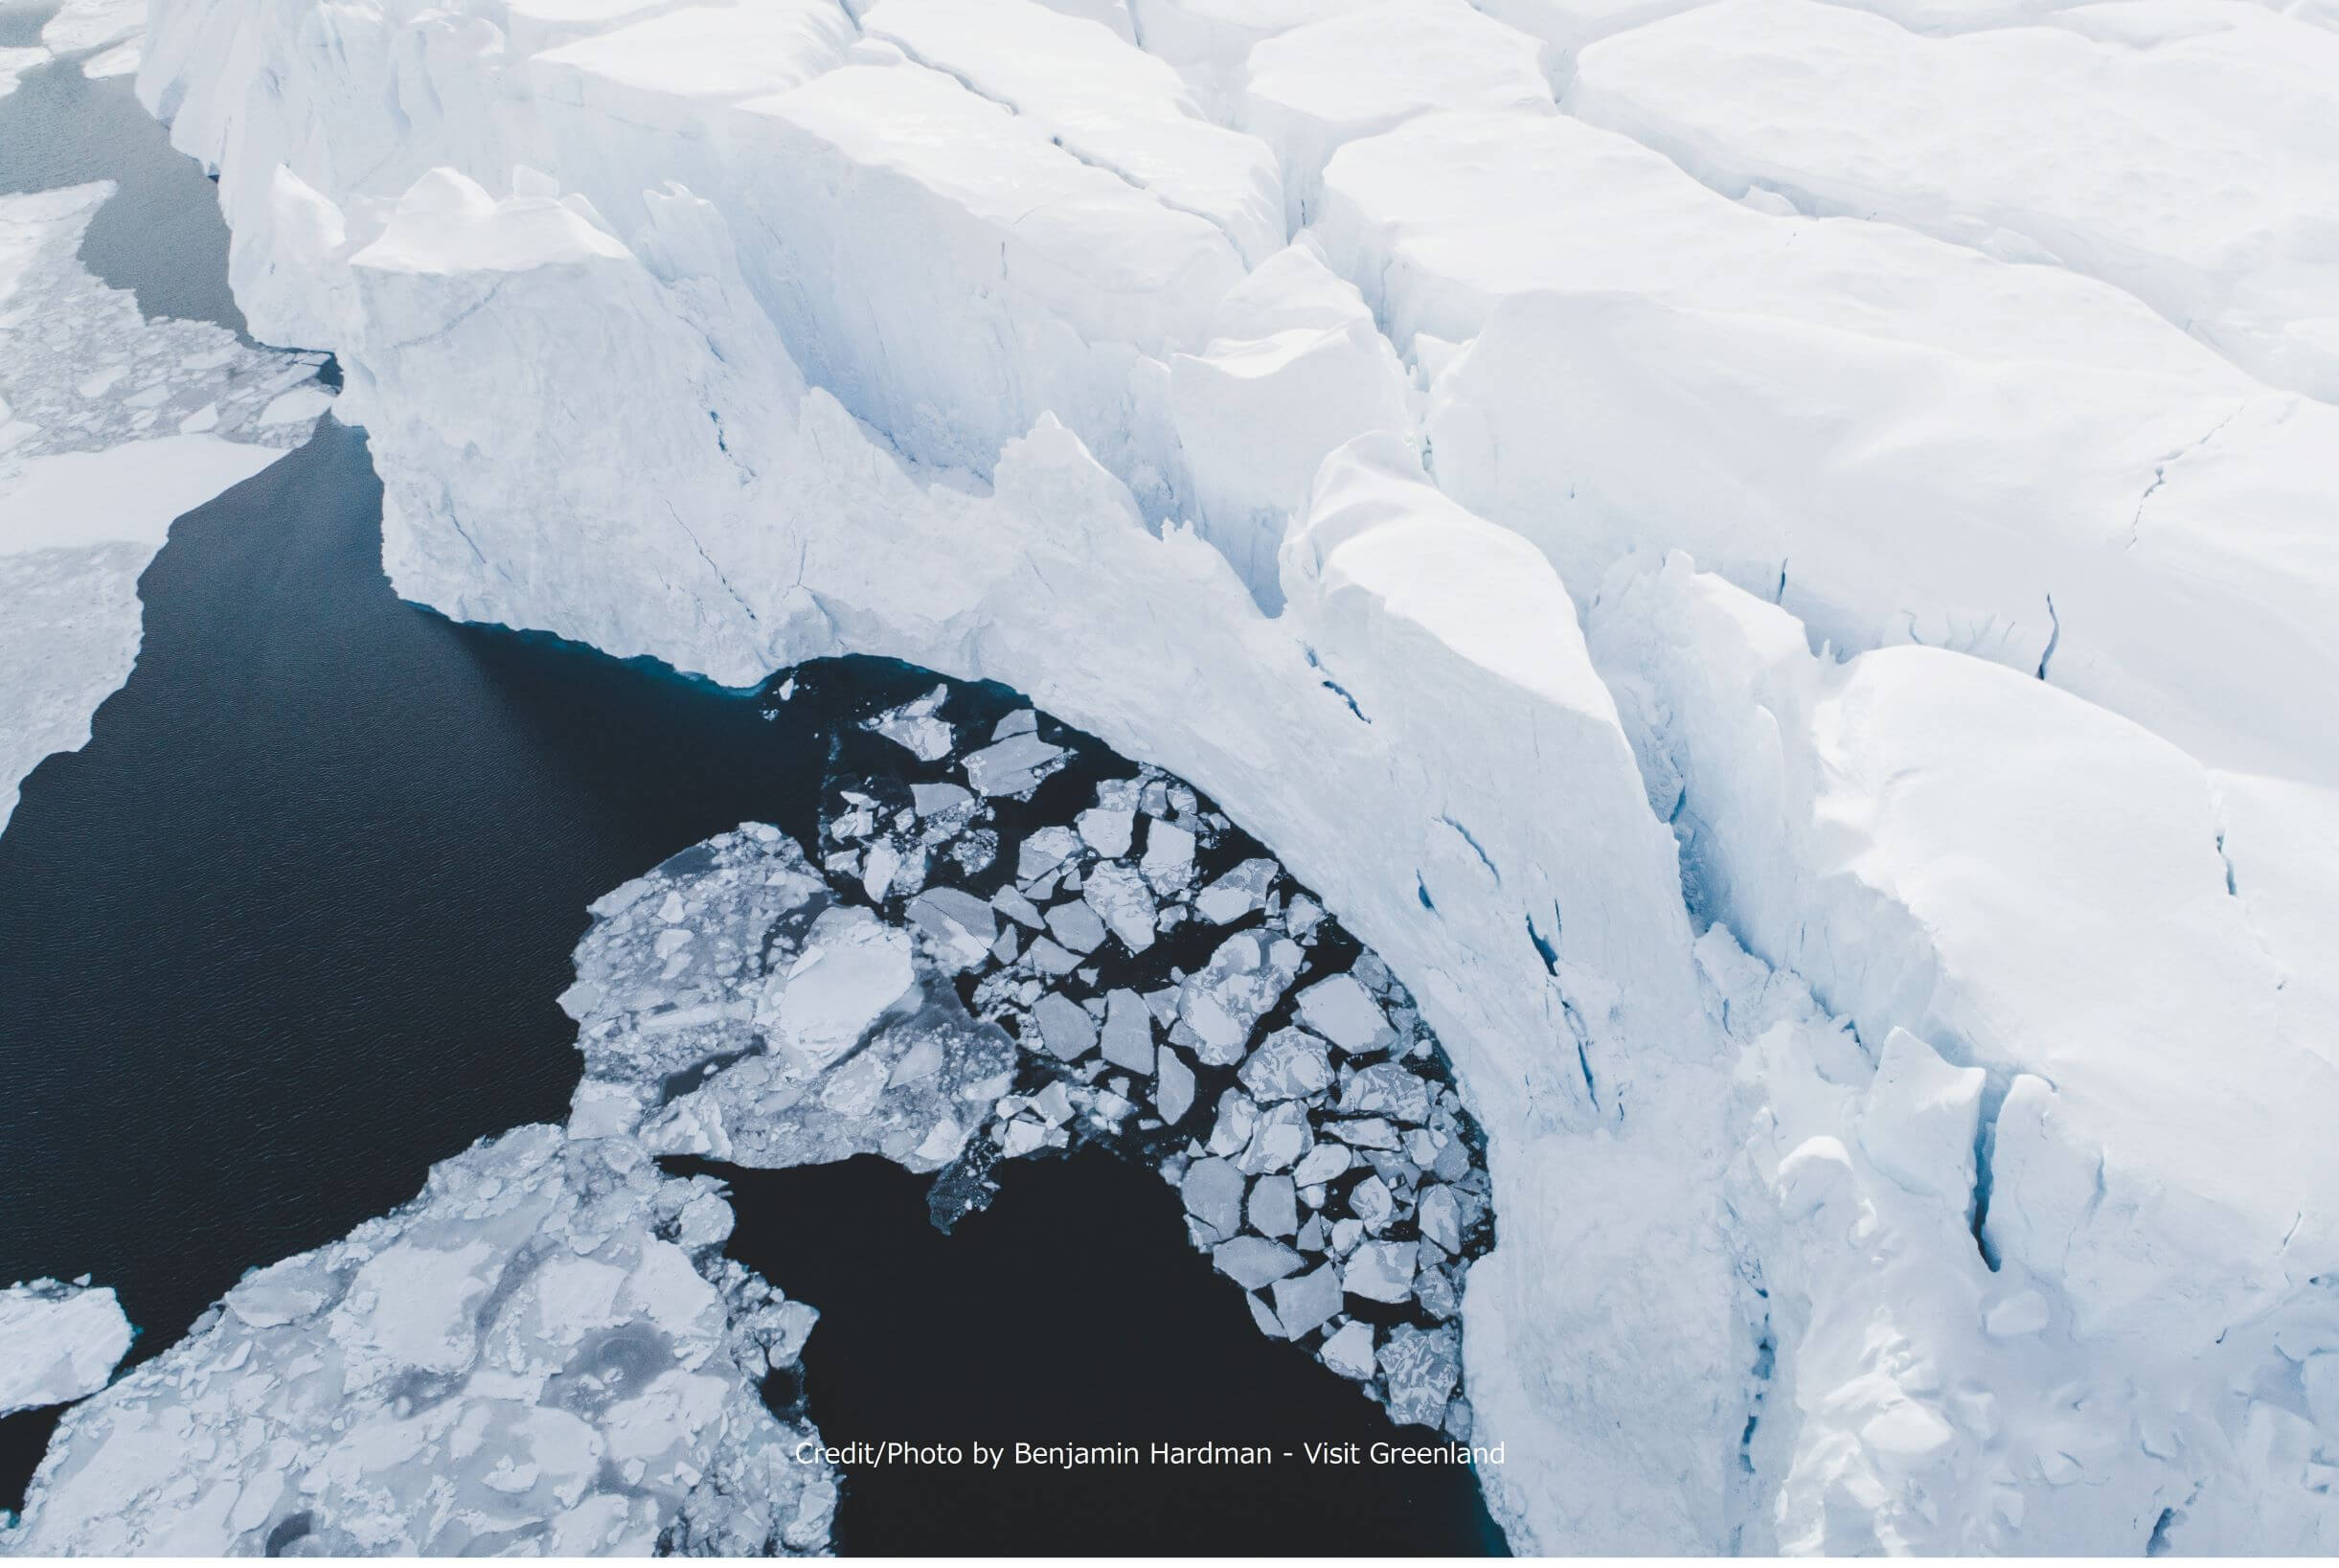 An aerial of the steep ice wall of a large iceberg in Disko Bay3